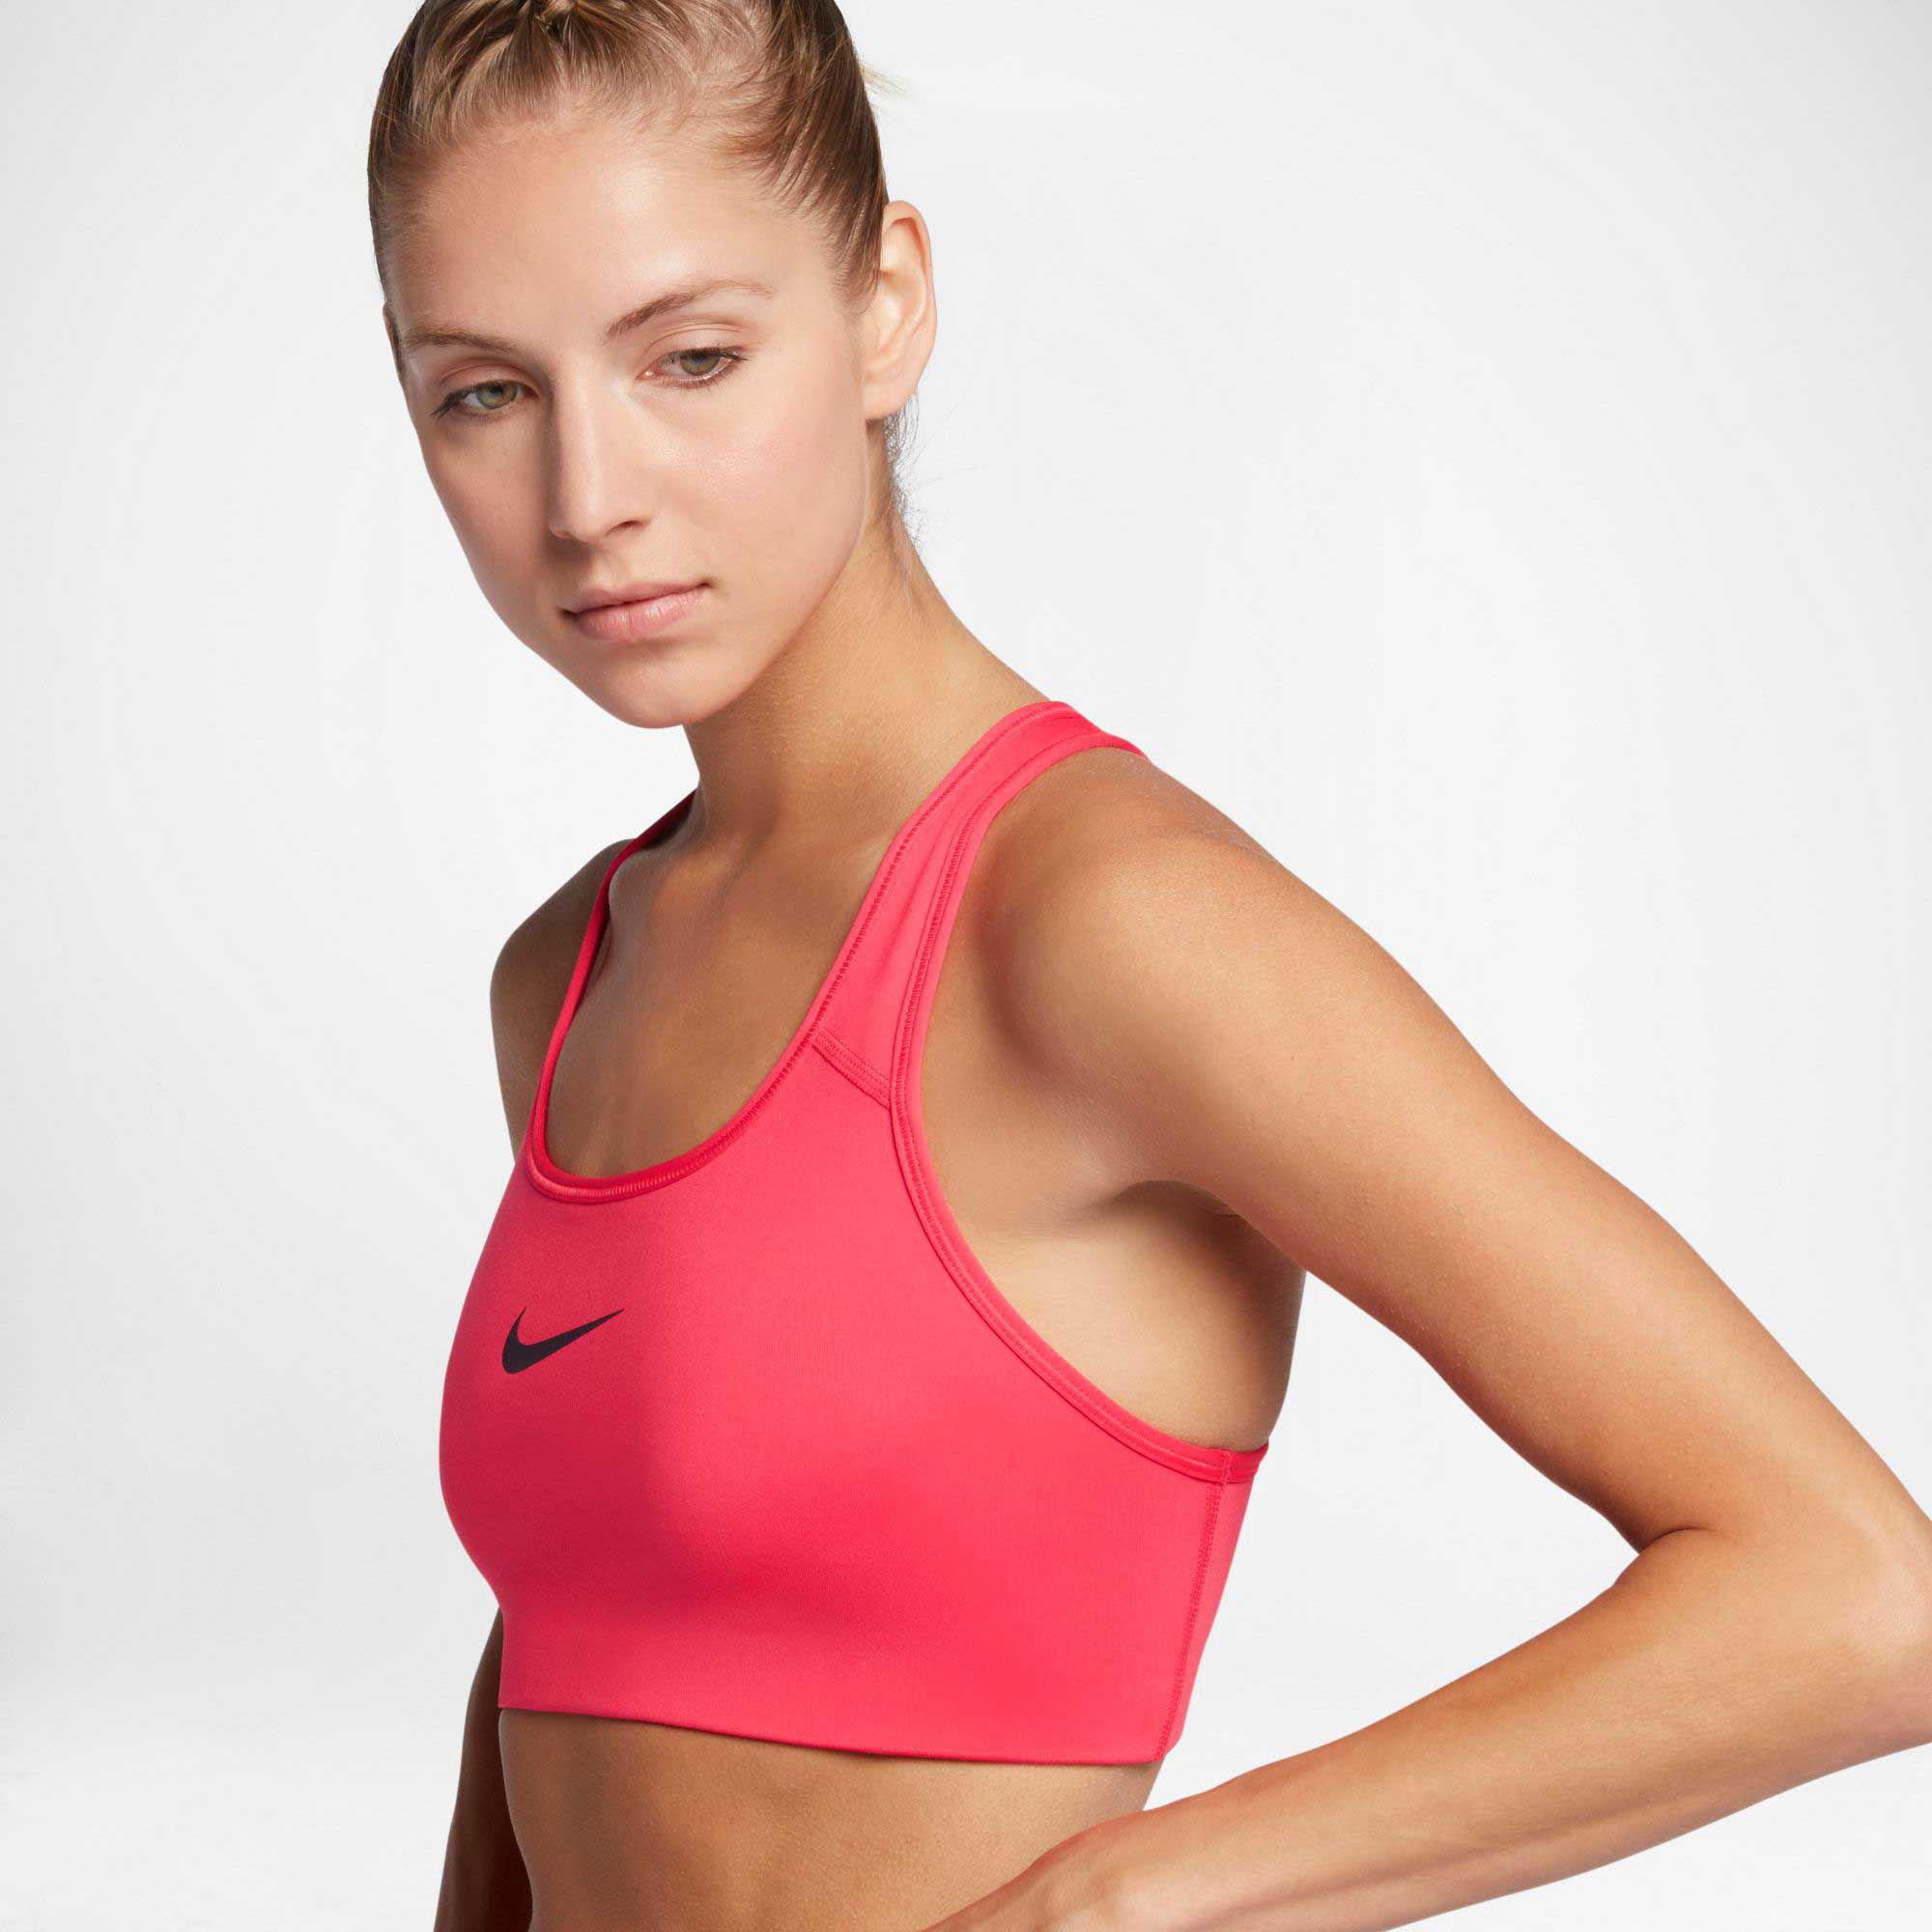 391b89e59 Lyst - Nike Pro Classic Swoosh Compression Sports Bra in Red